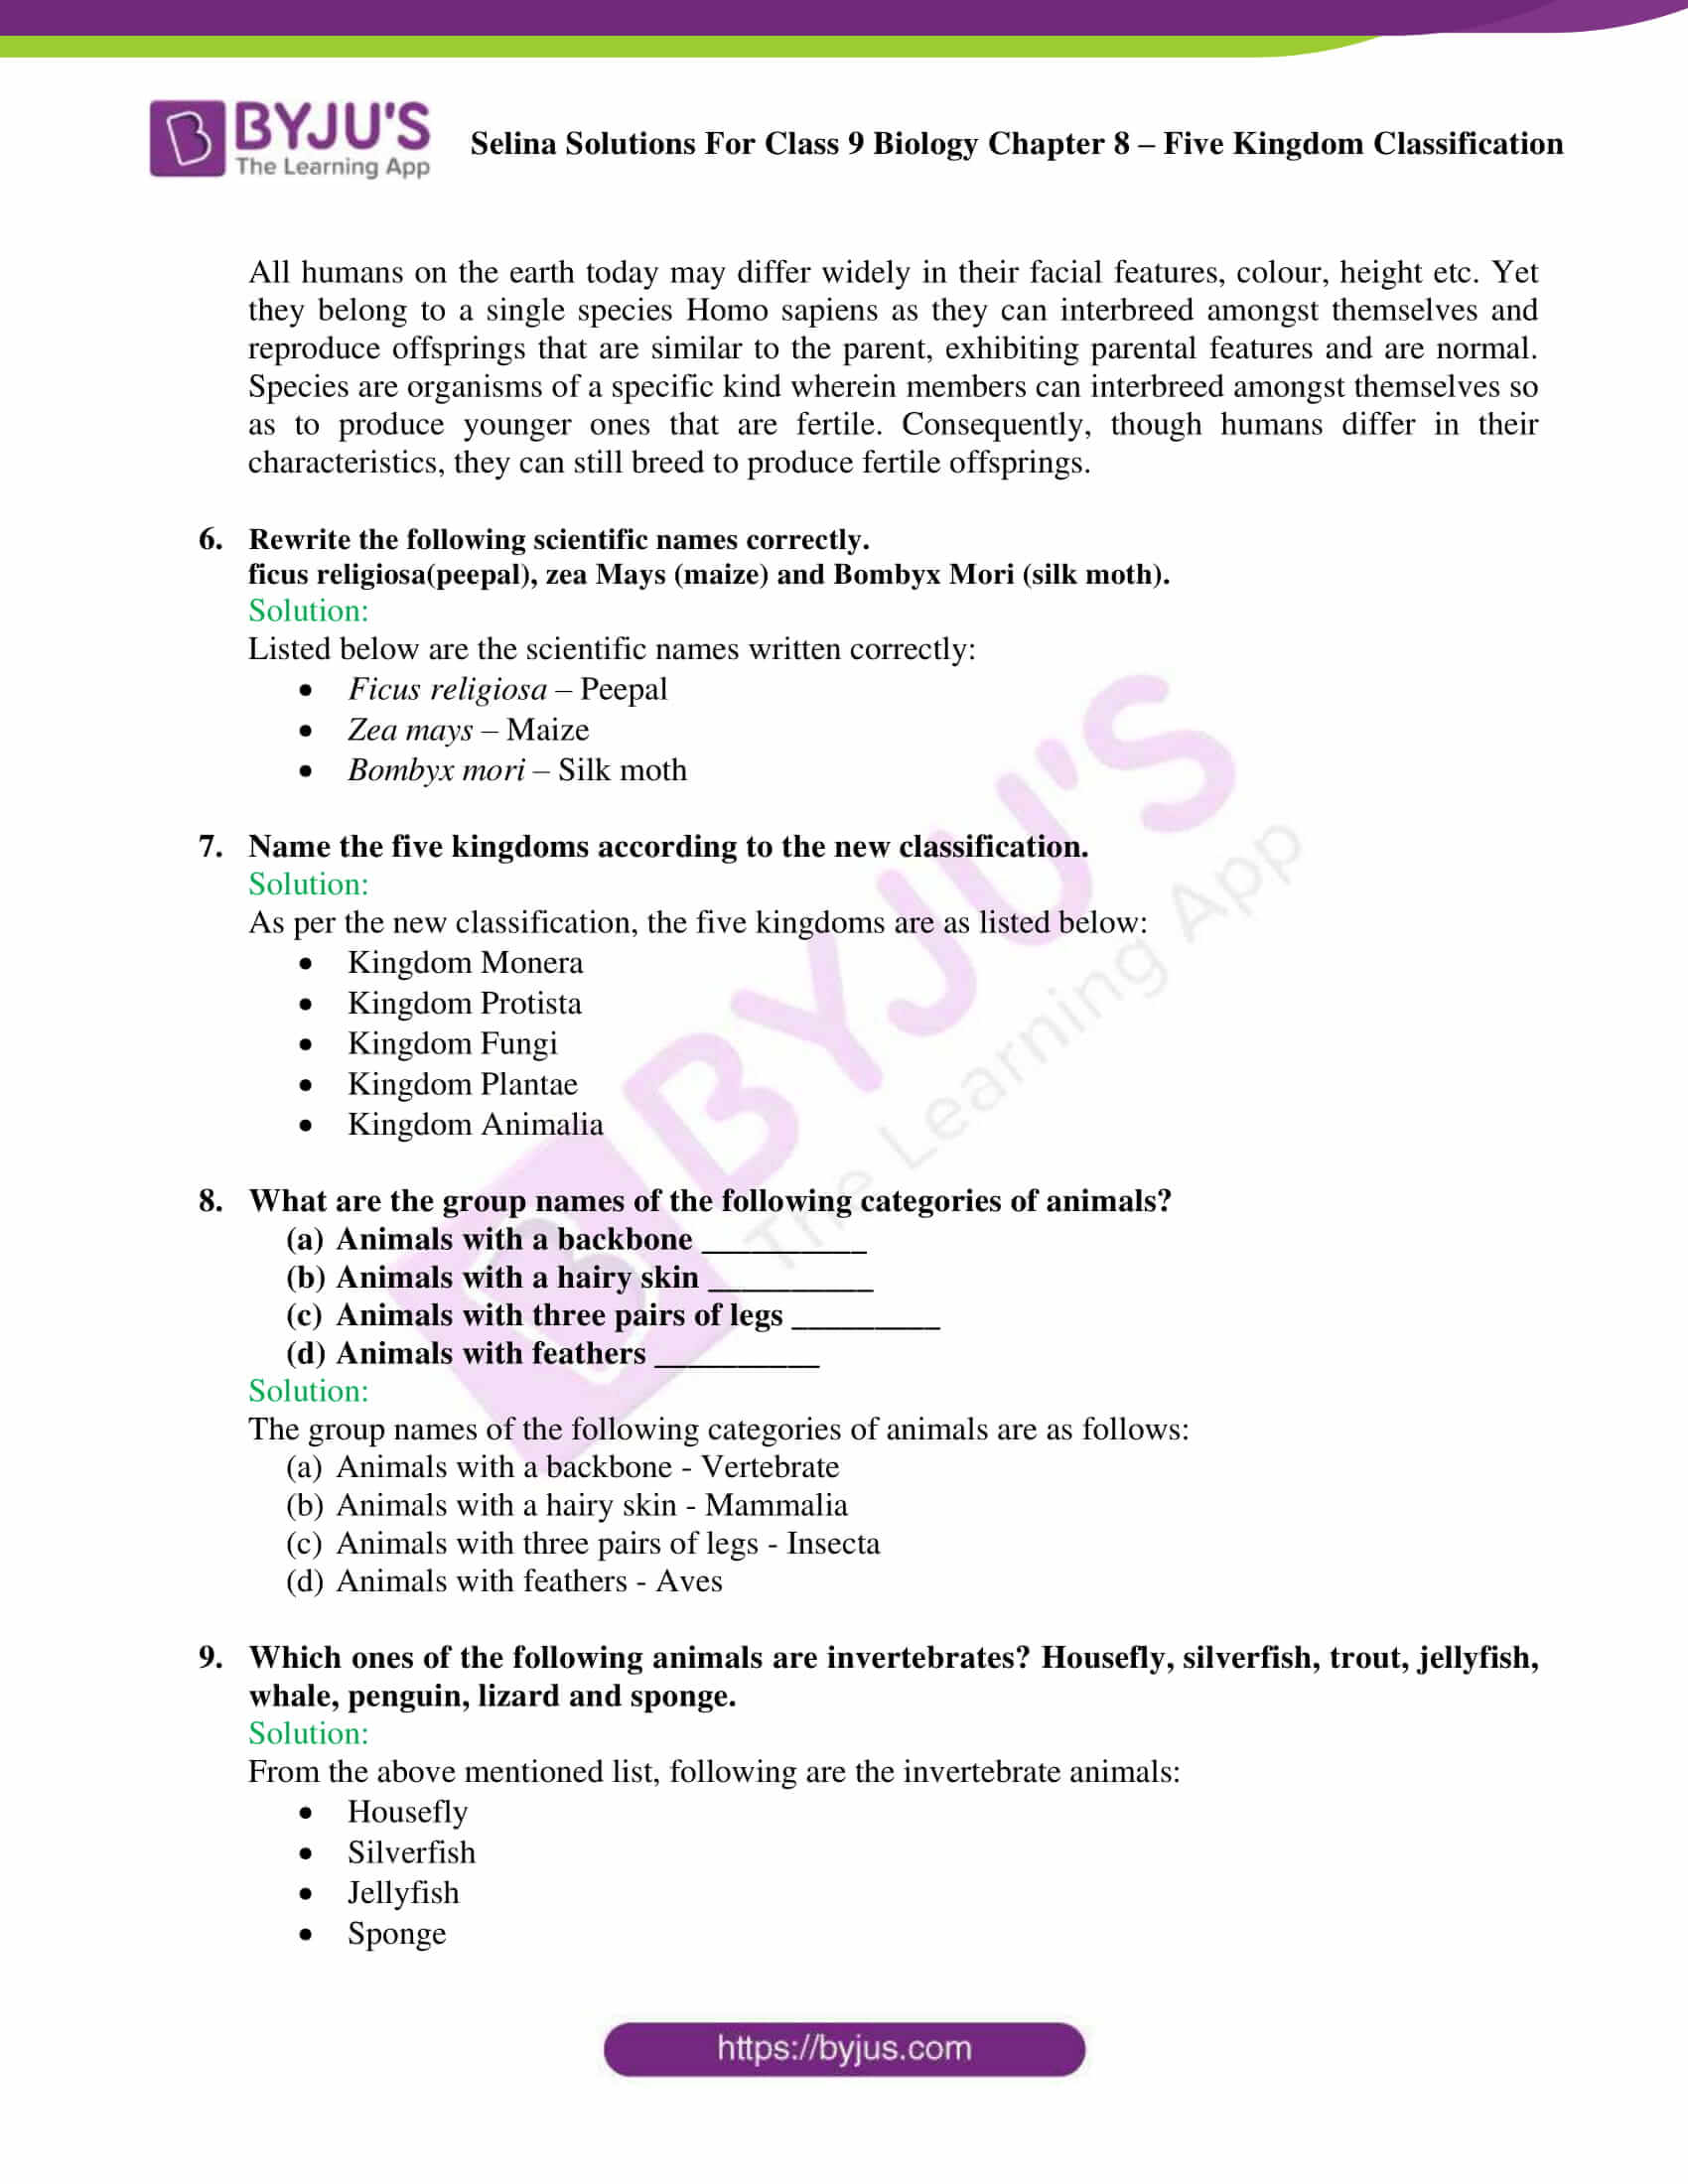 Selina Solutions For Class 9 Biology Chapter 8 Five Kingdom Classification part 08